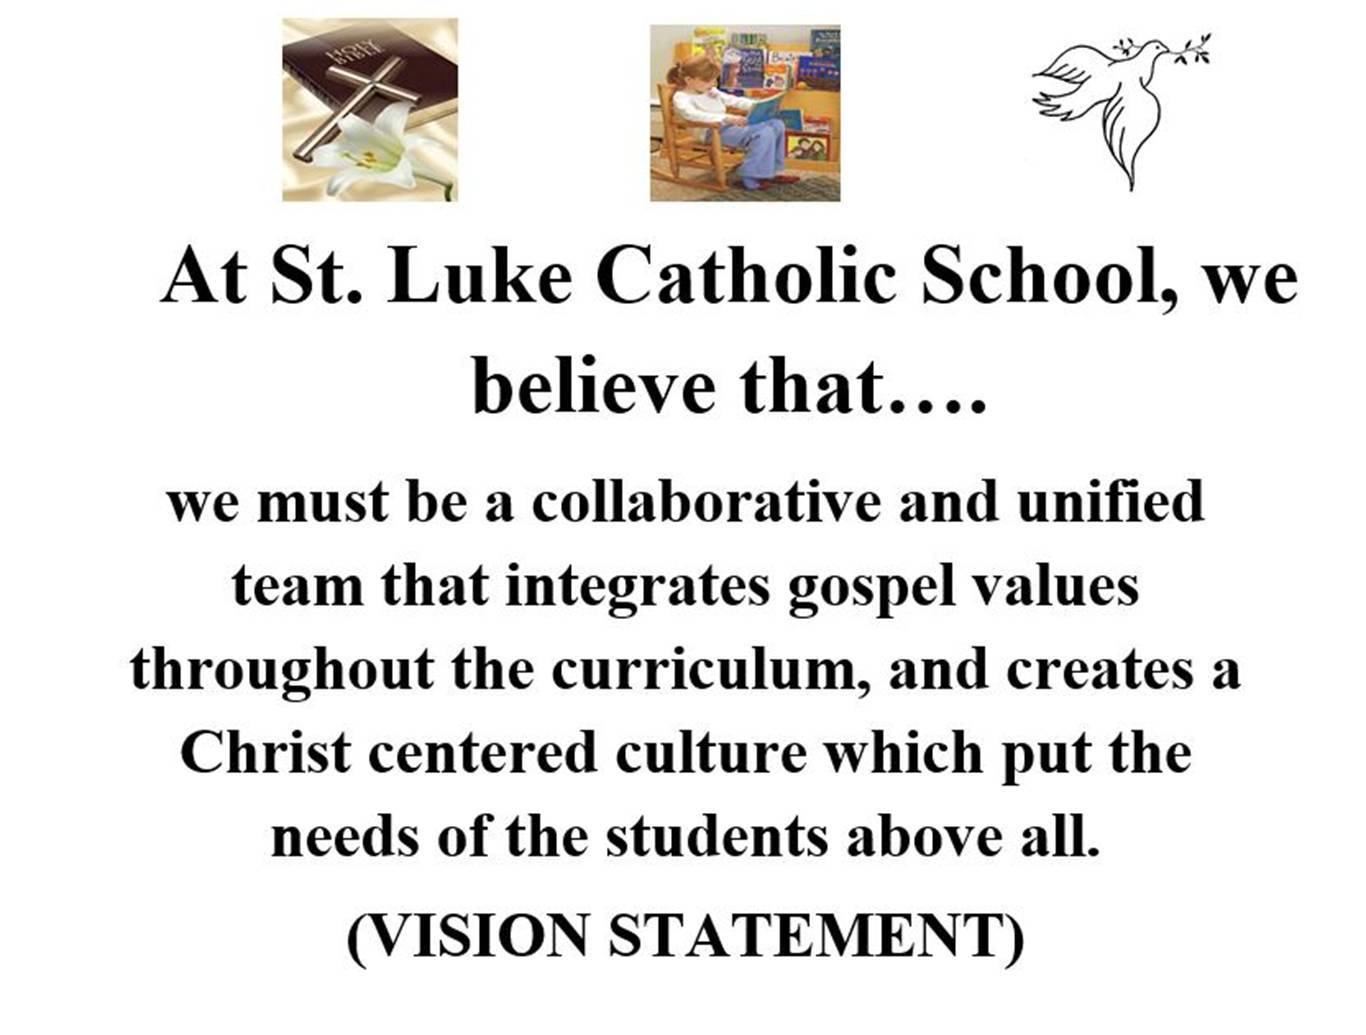 St. Luke Mission, Vision, and Values Statements